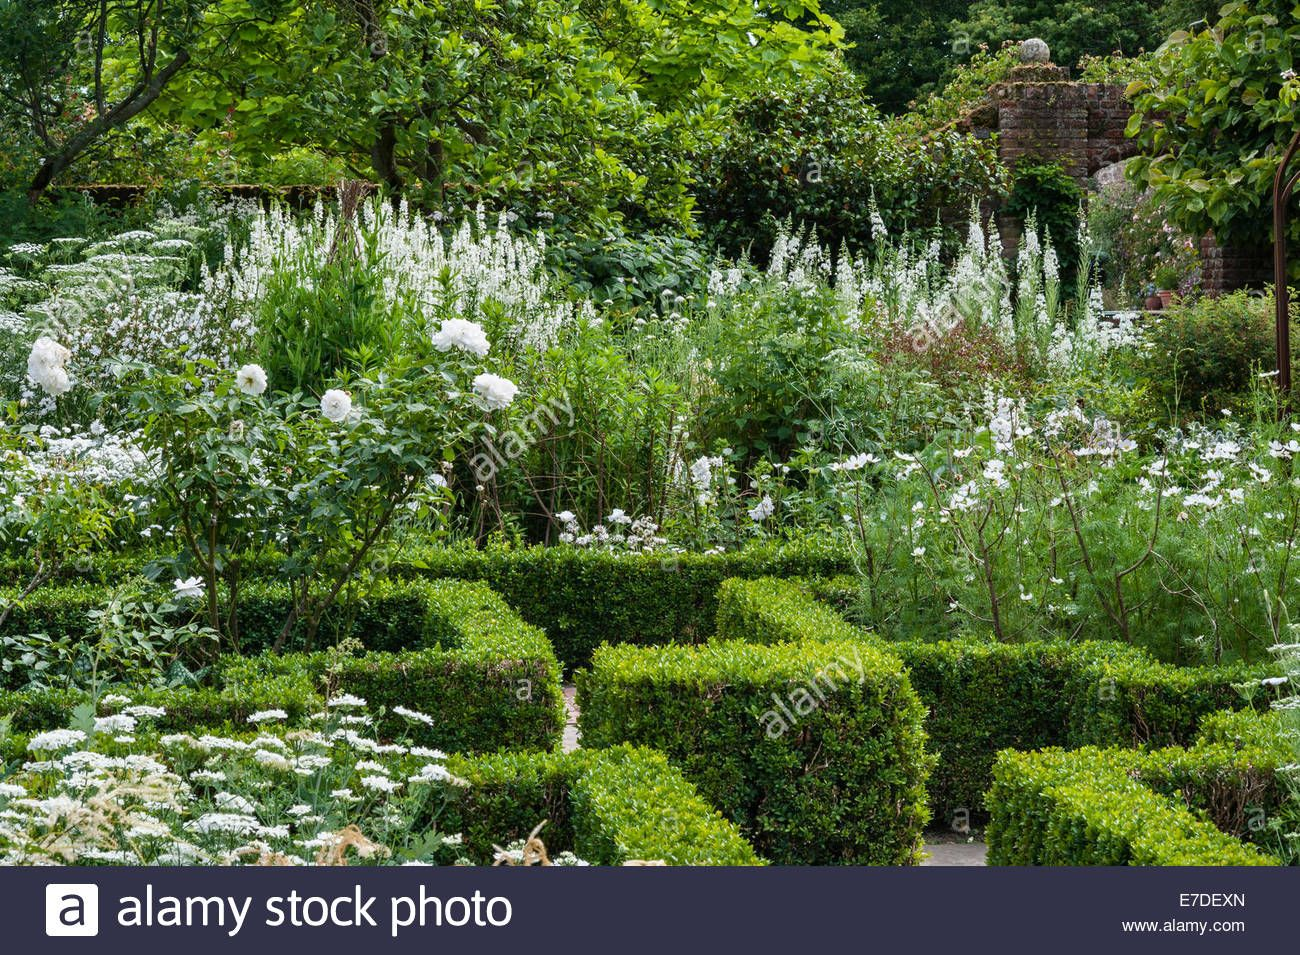 Sissinghurst Castle, Kent. Parterres In The White Garden In Summer Stock Photo, Royalty Free Image: 73441165 - Alamy